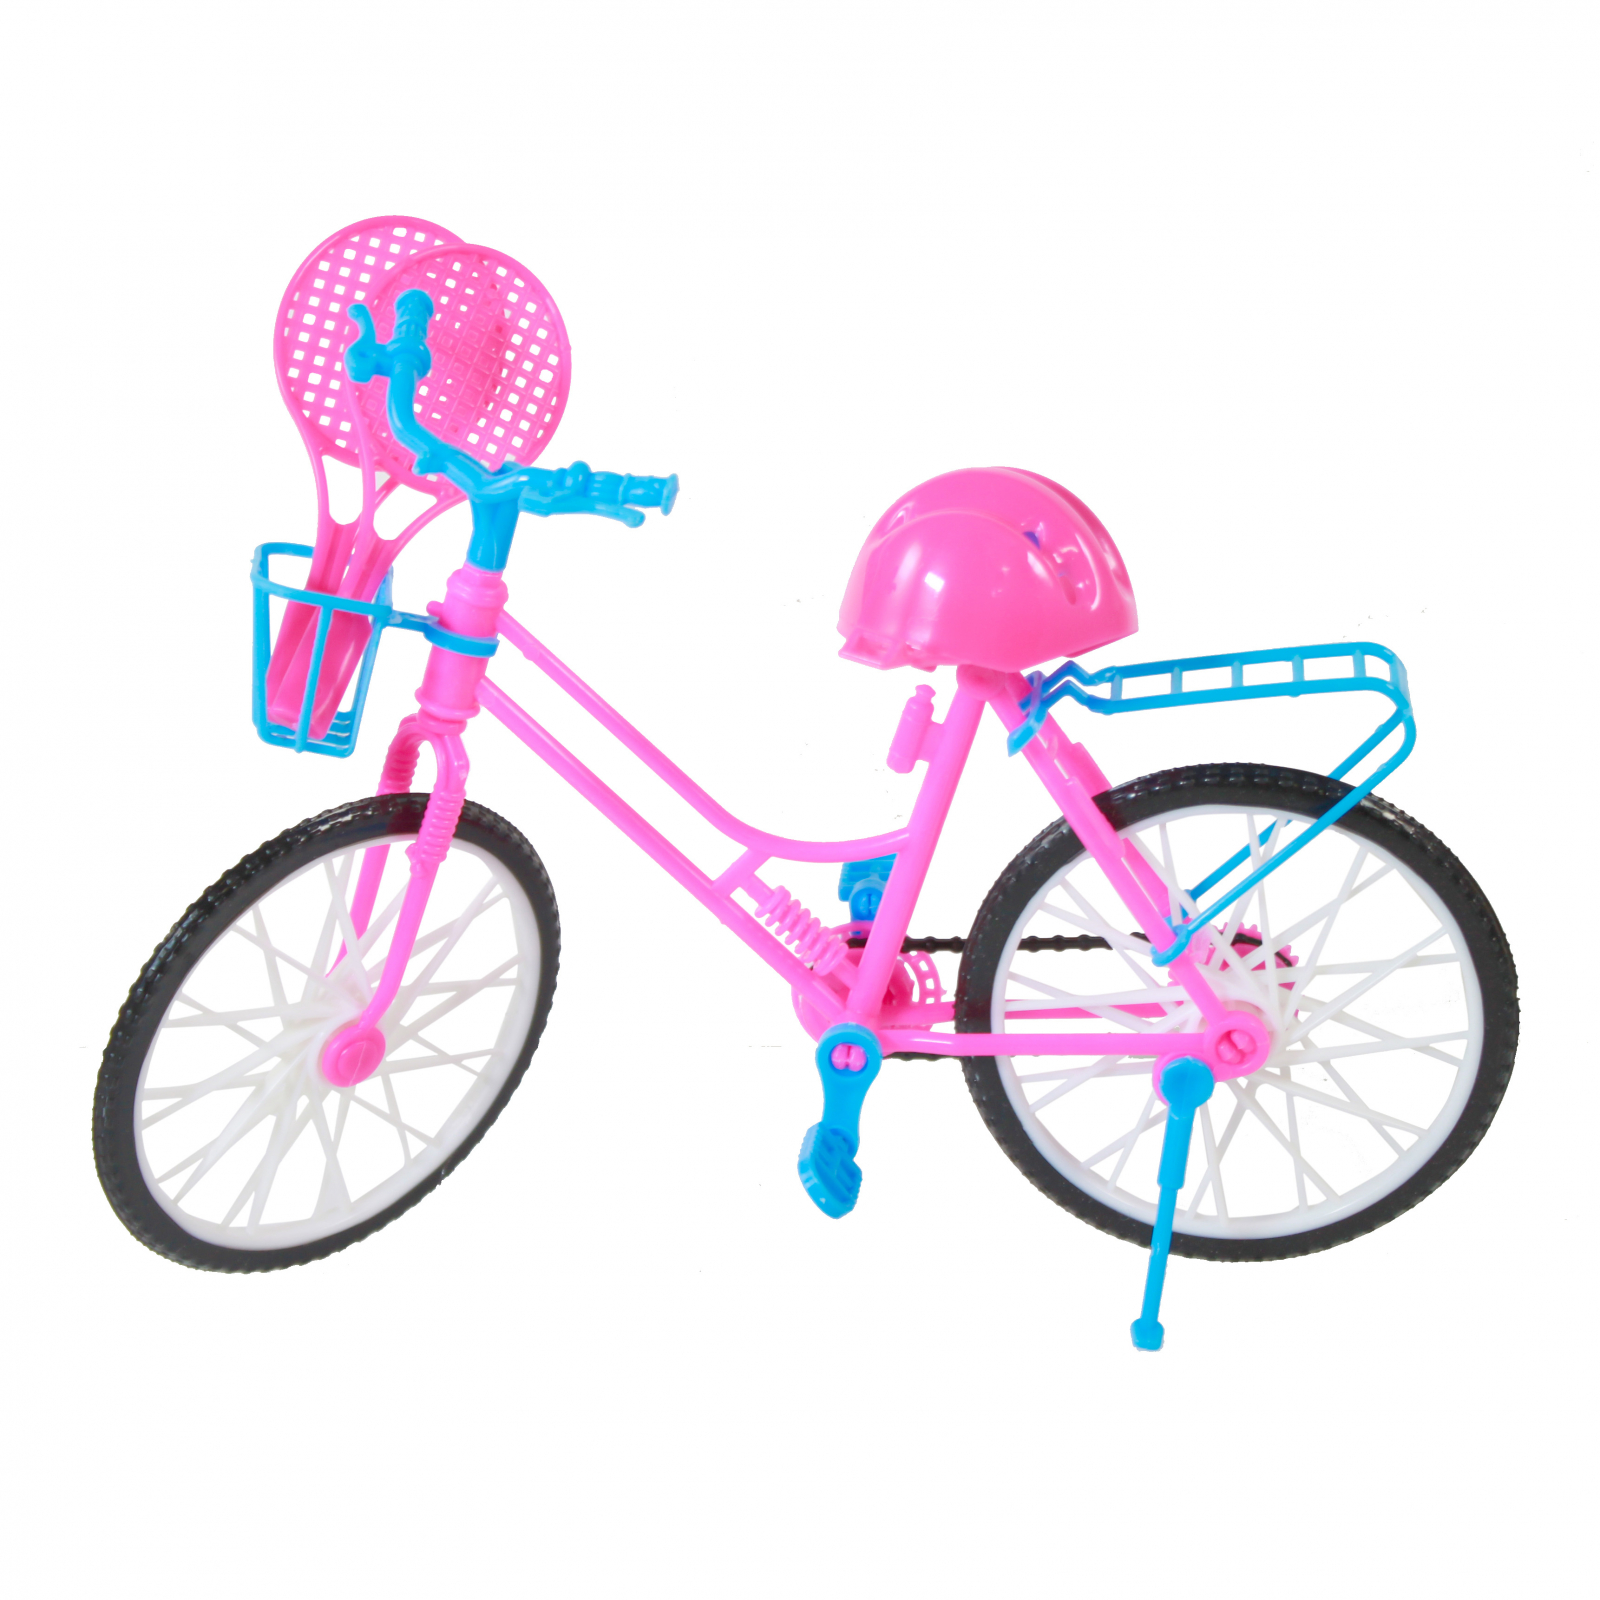 Blonde Doll Playset With Pink Blue Bike and Sports Equipment